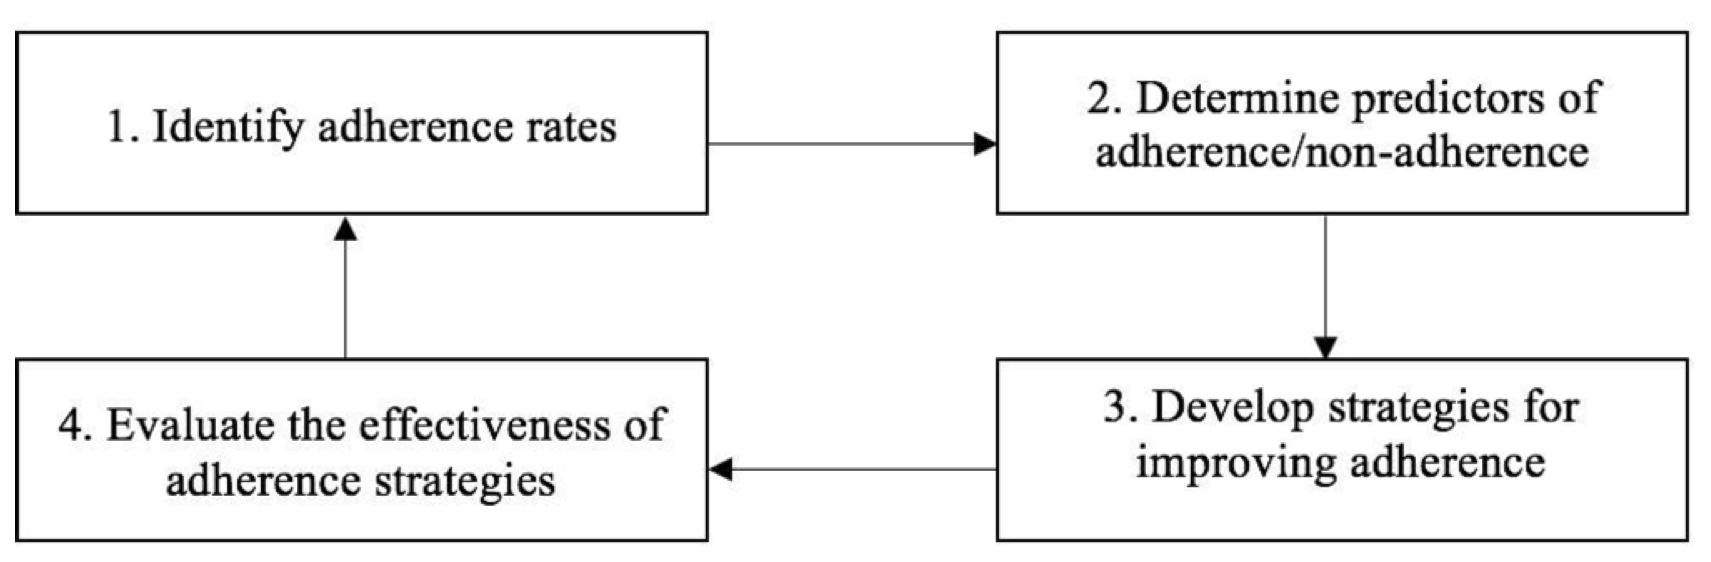 Proposed research framework for the development of effective adherence strategies (adapted from the 'sequence of prevention').